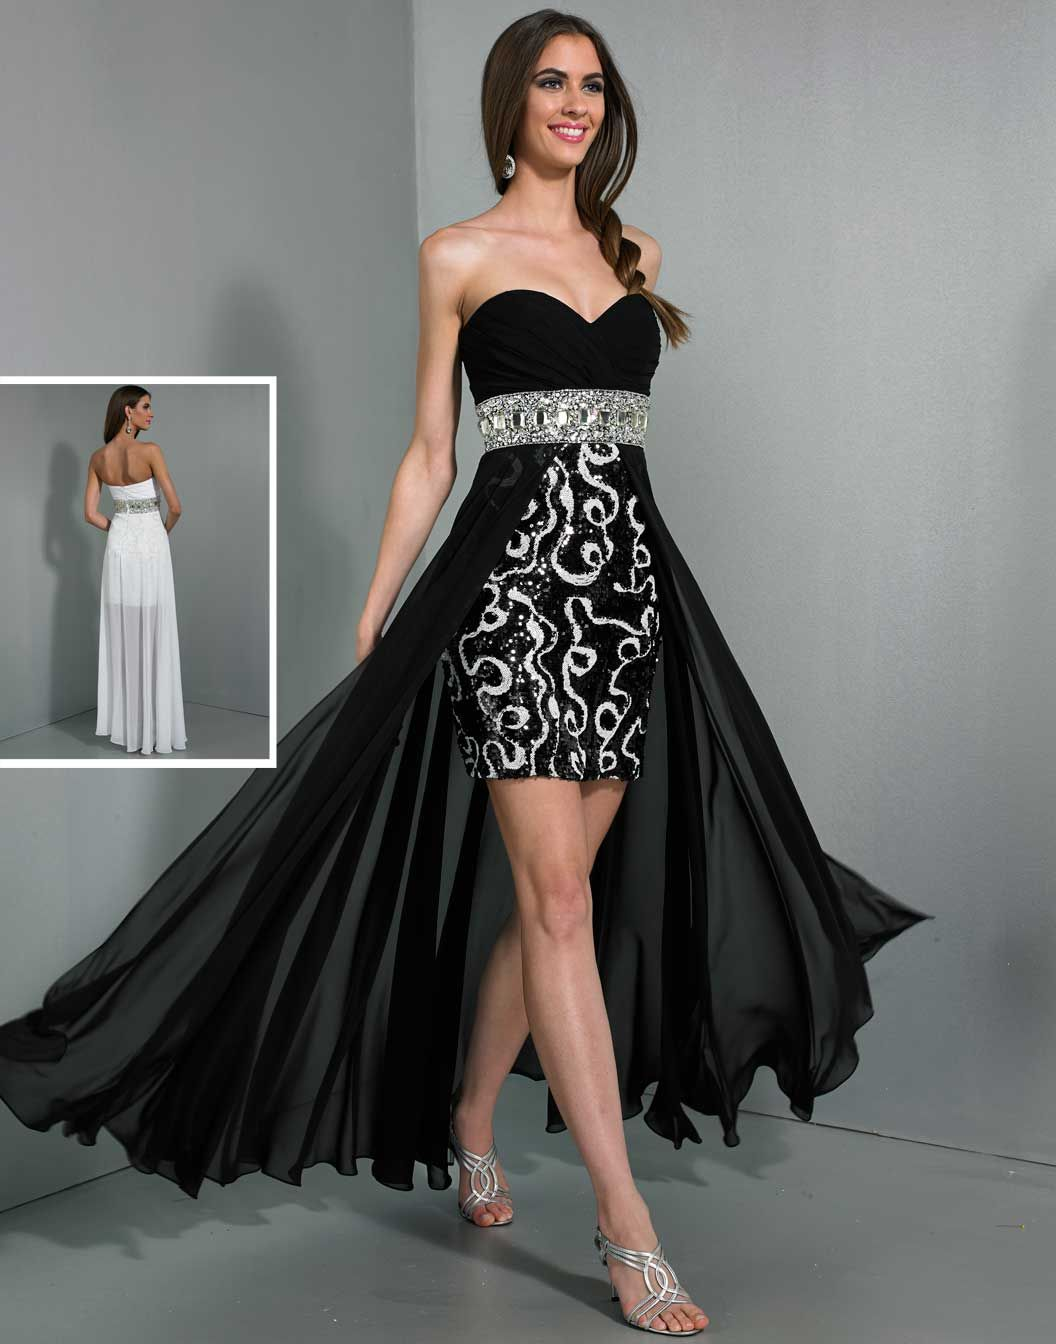 Prom dresses stores prom dress gallery prom trunk shows prom store